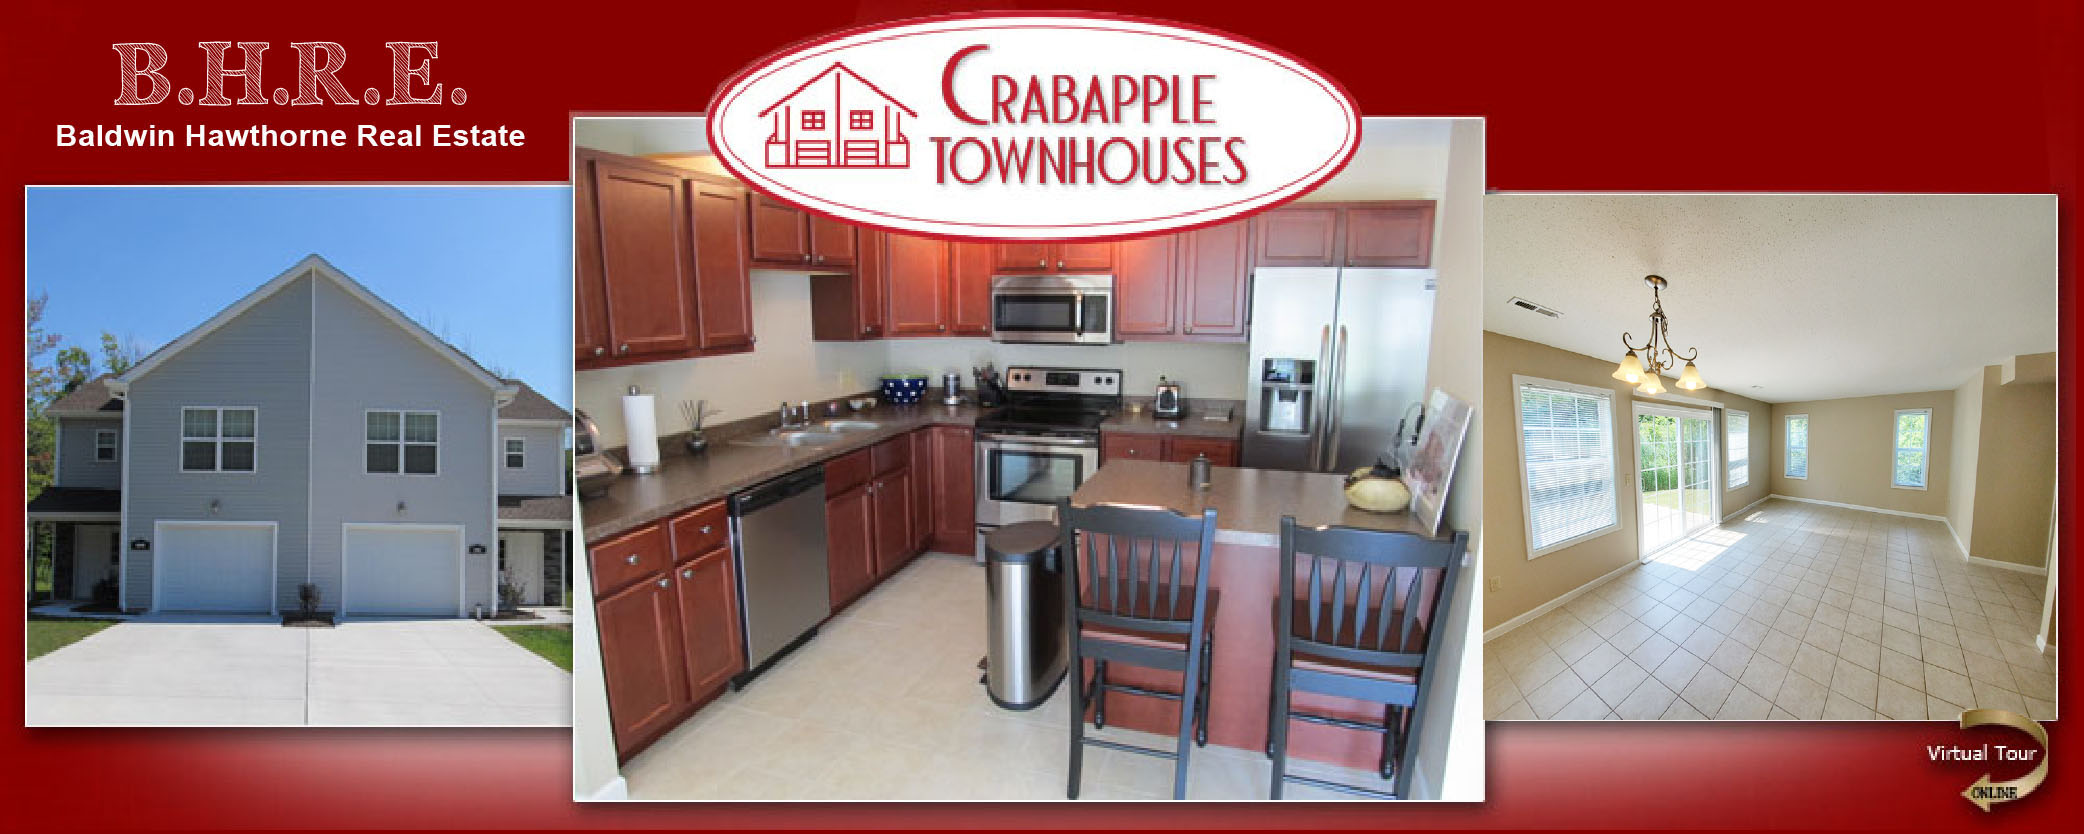 erie townhouse rental